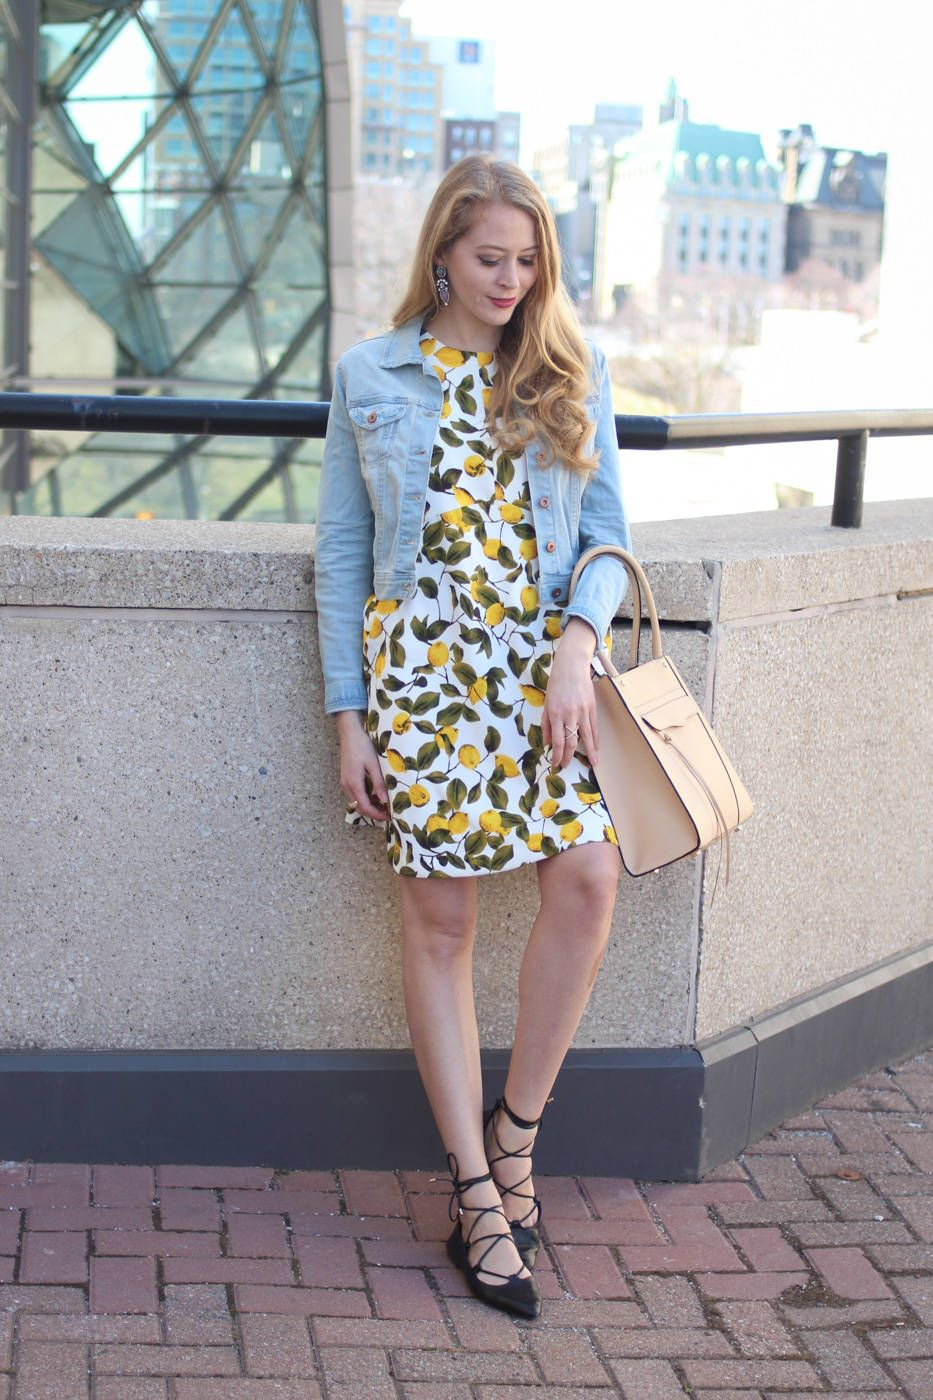 6458ab88 Nothing says spring like a fun dress, and this lemon print dress from Zara  is the perfect transitional piece to go from chilly spring days to summer  ...